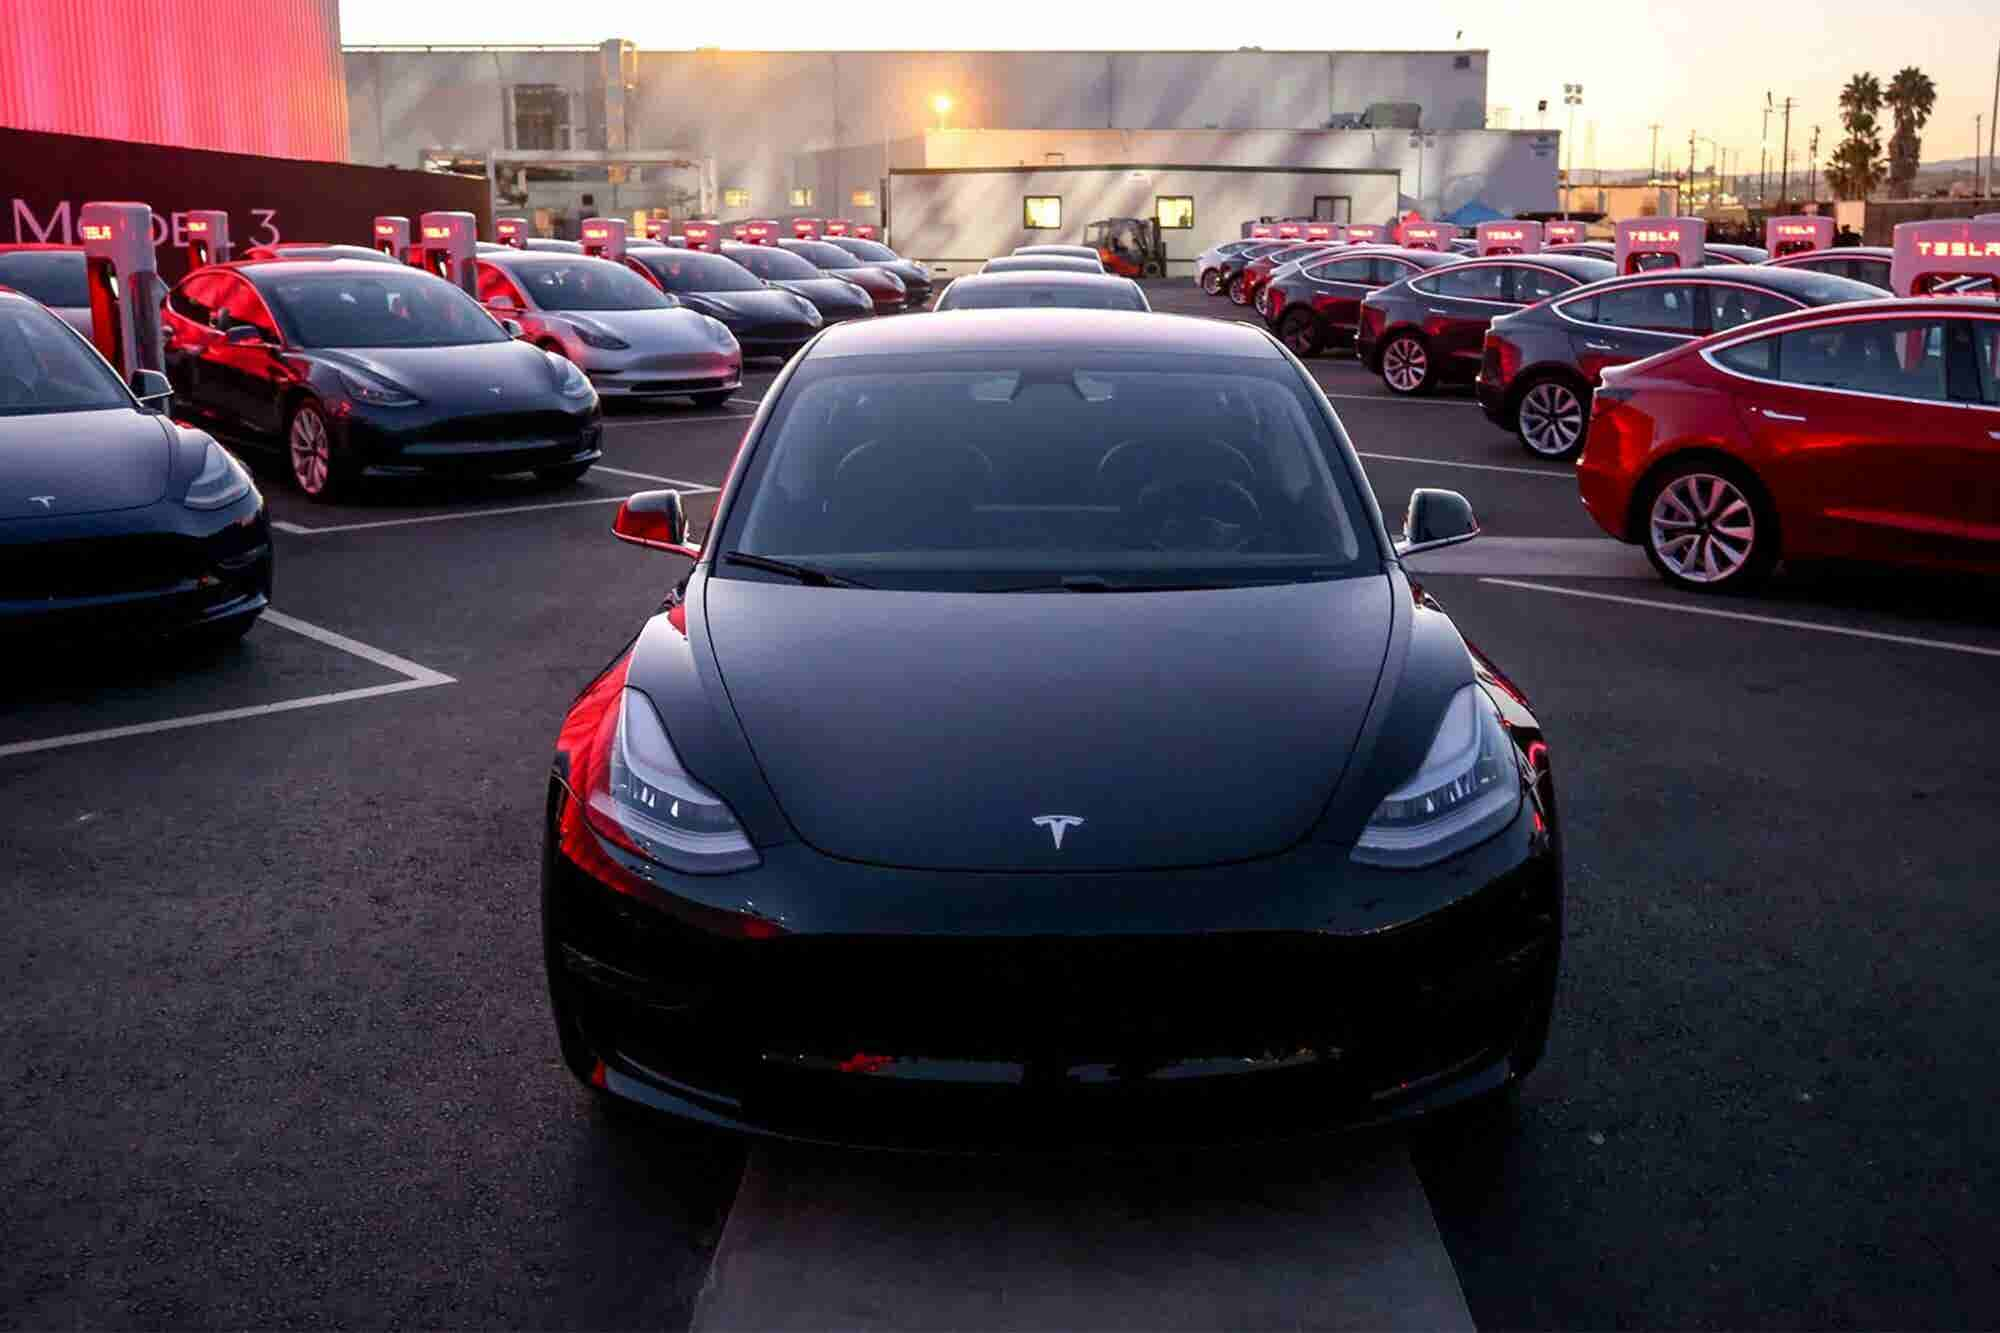 Tesla Decides to Keep Stores Open but Raise Prices